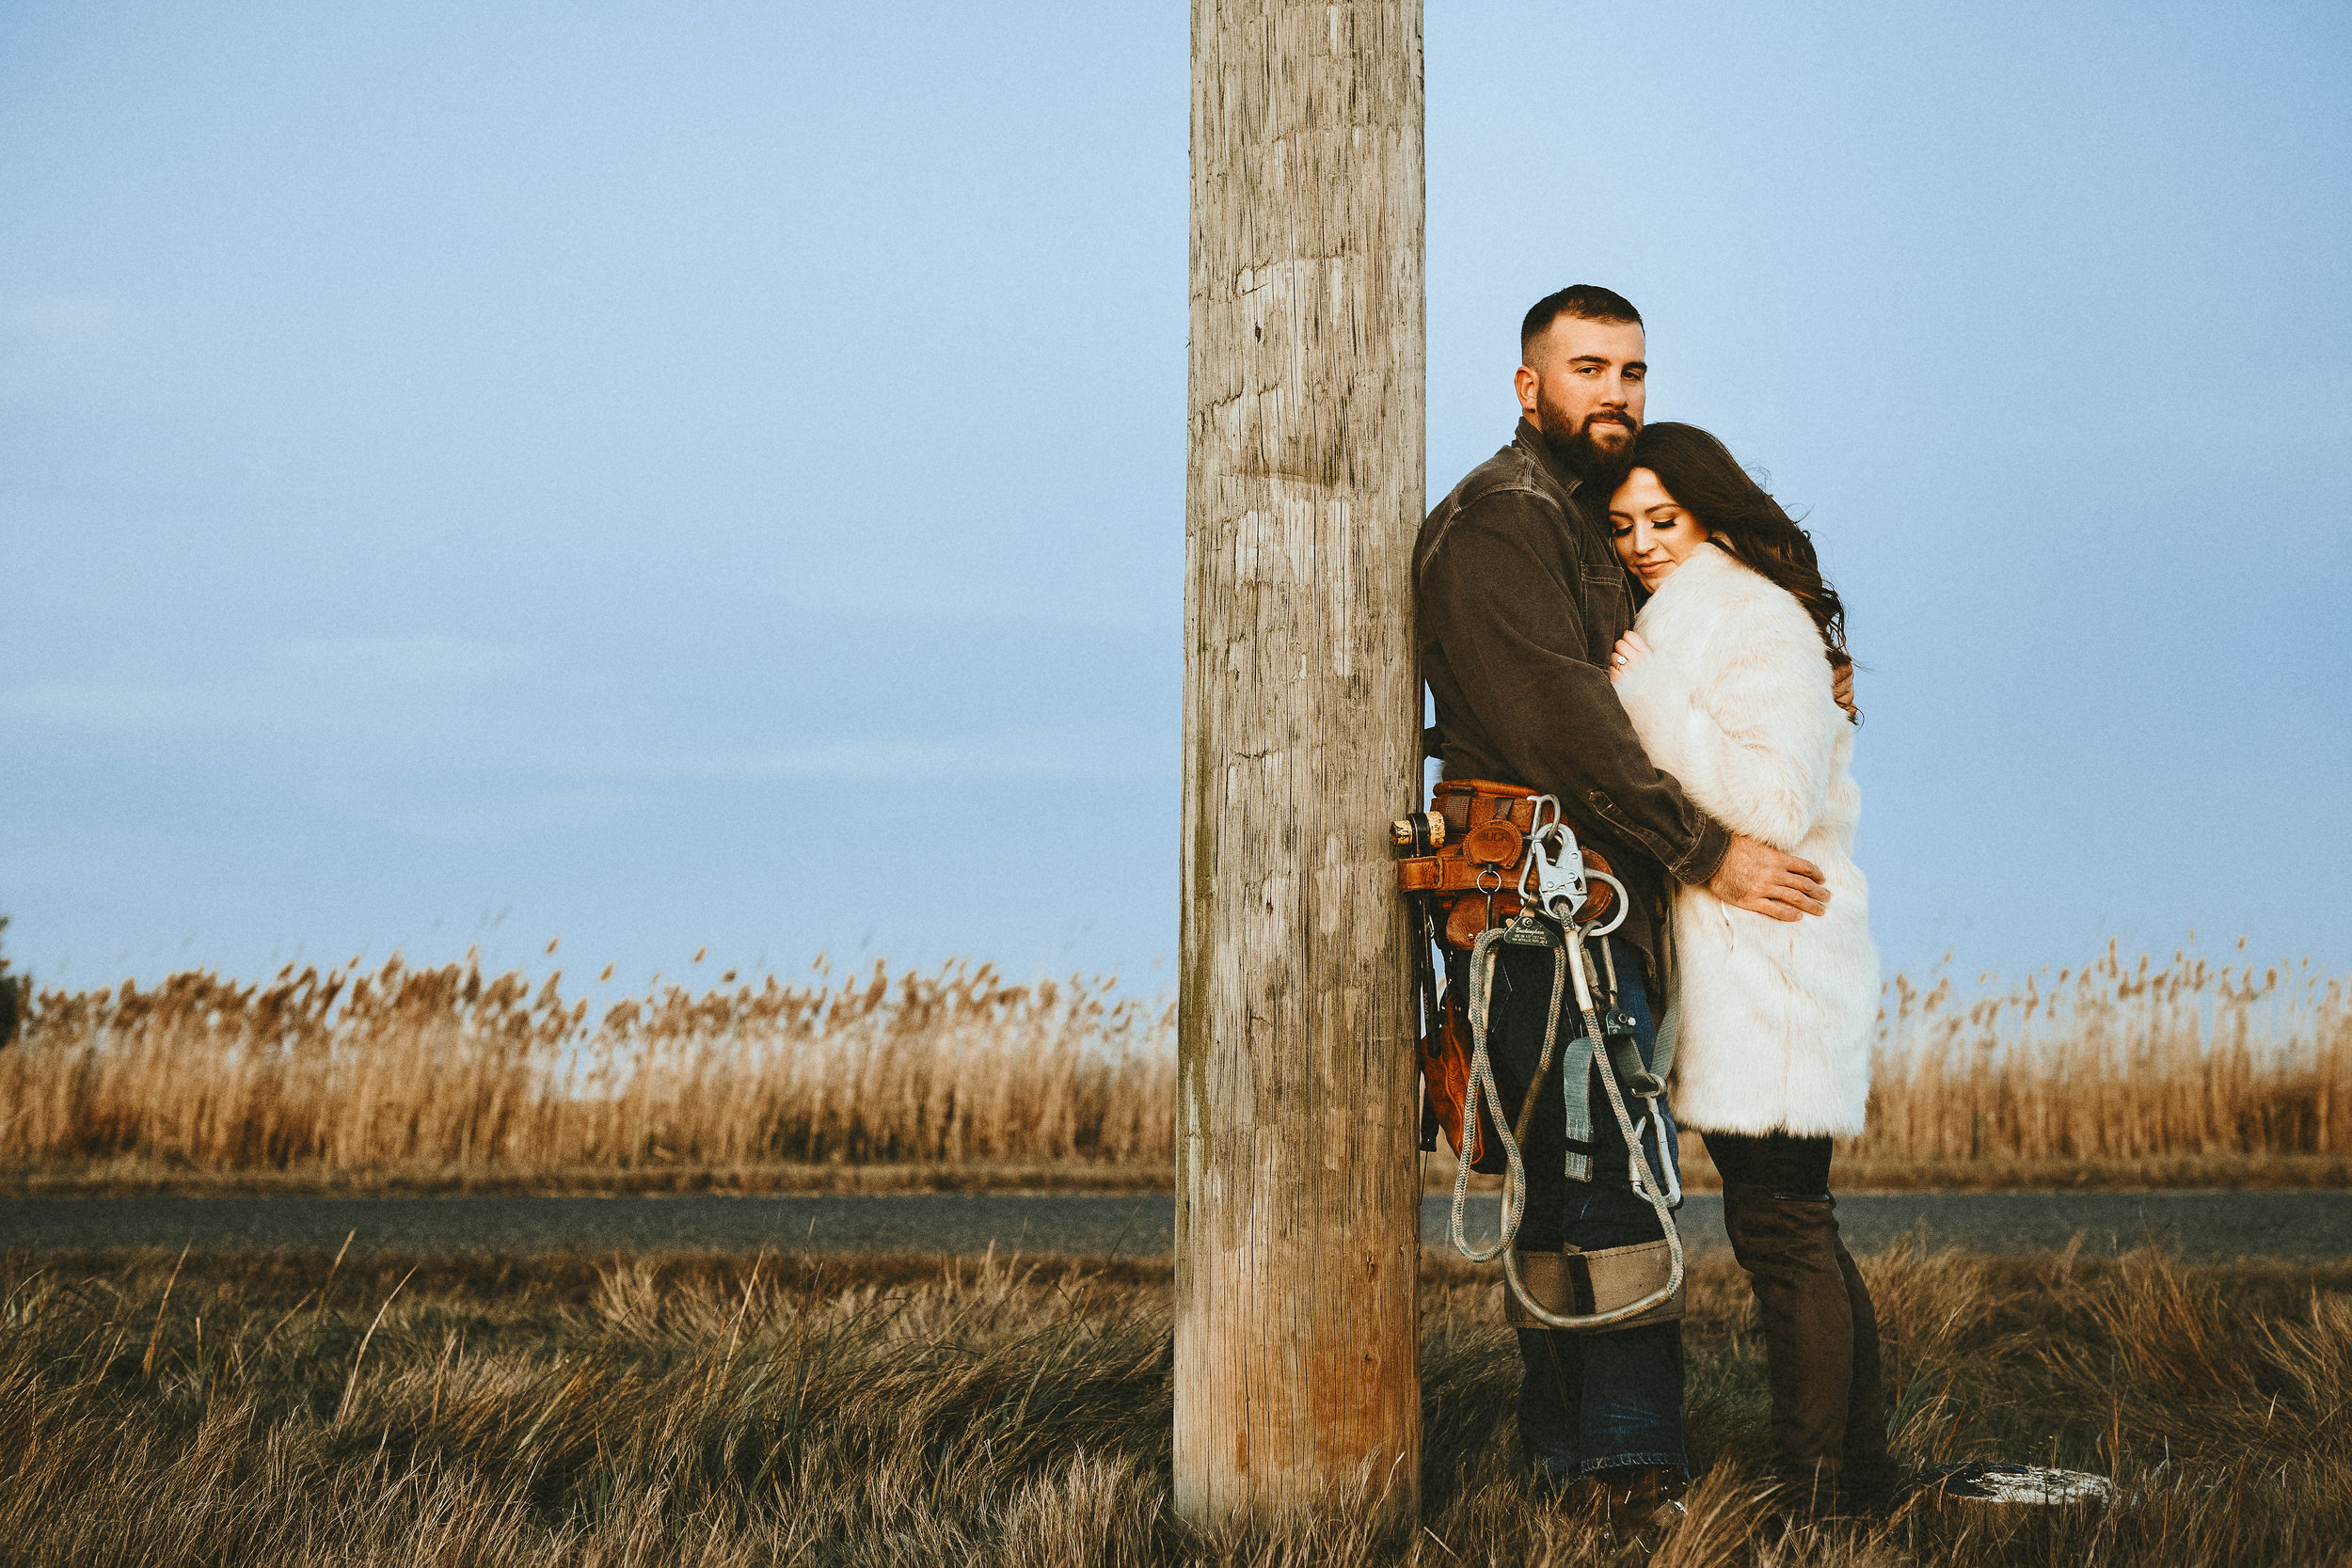 Our Engagement Photos | Pine Barren Beauty | engagement photos, engagement photo ideas, what to wear for fall engagement photos, lineman engagement photos, wedding inspiration, bride to be